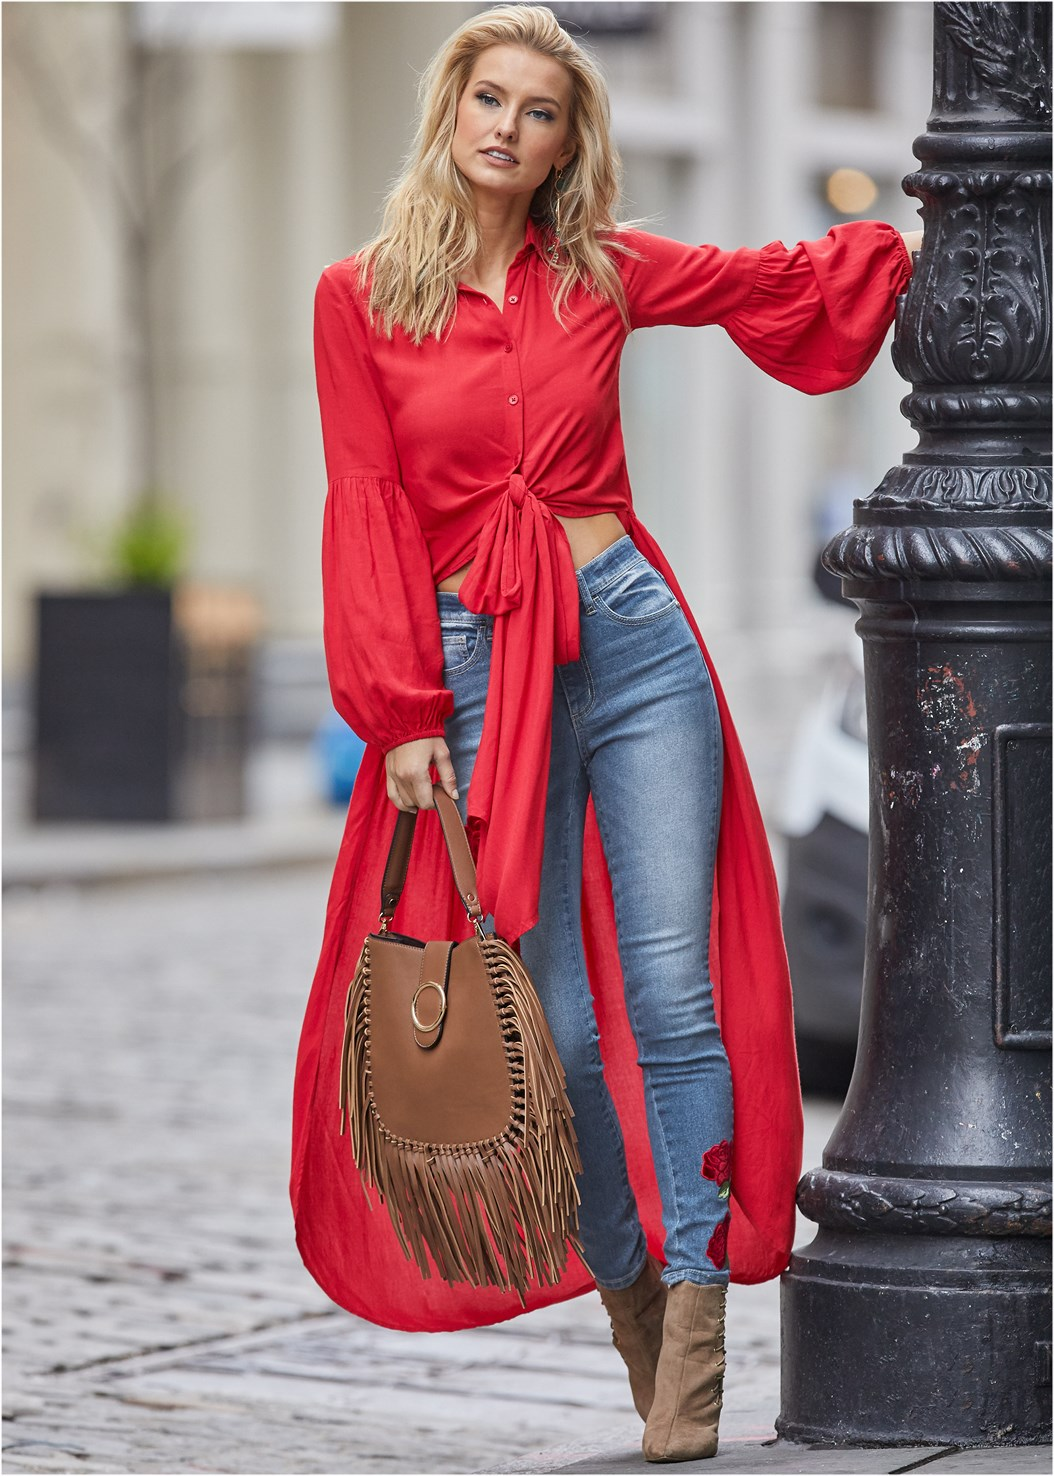 Tie Front High Low Top,Rose Embroidered Jeans,Cage Contour Bra,Fringe Handbag,Tiger Detail Earrings